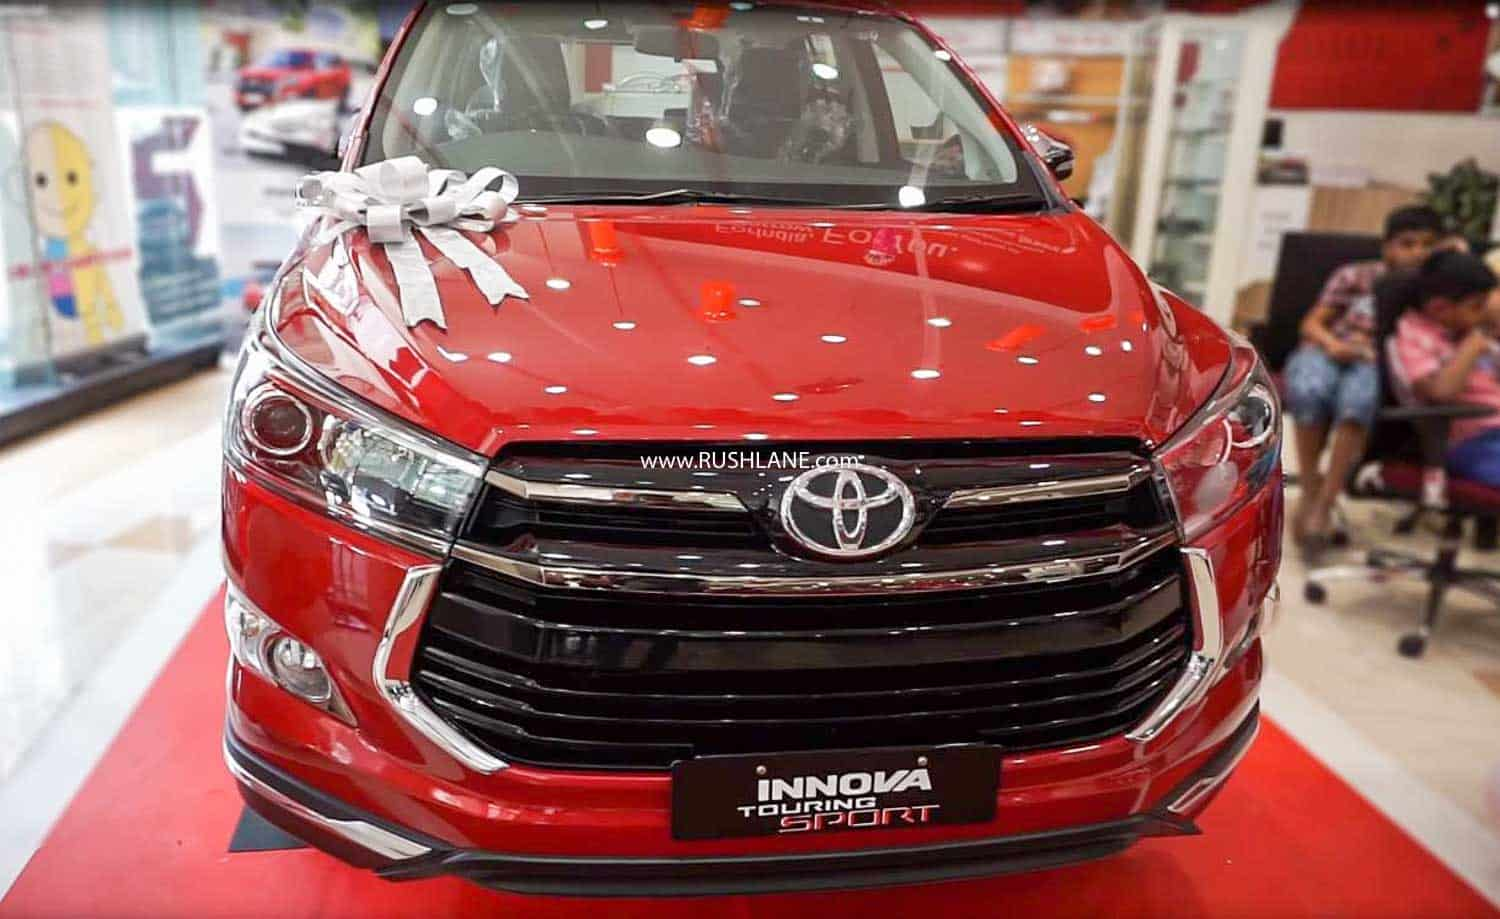 Toyota Innova Crysta Leadership Edition